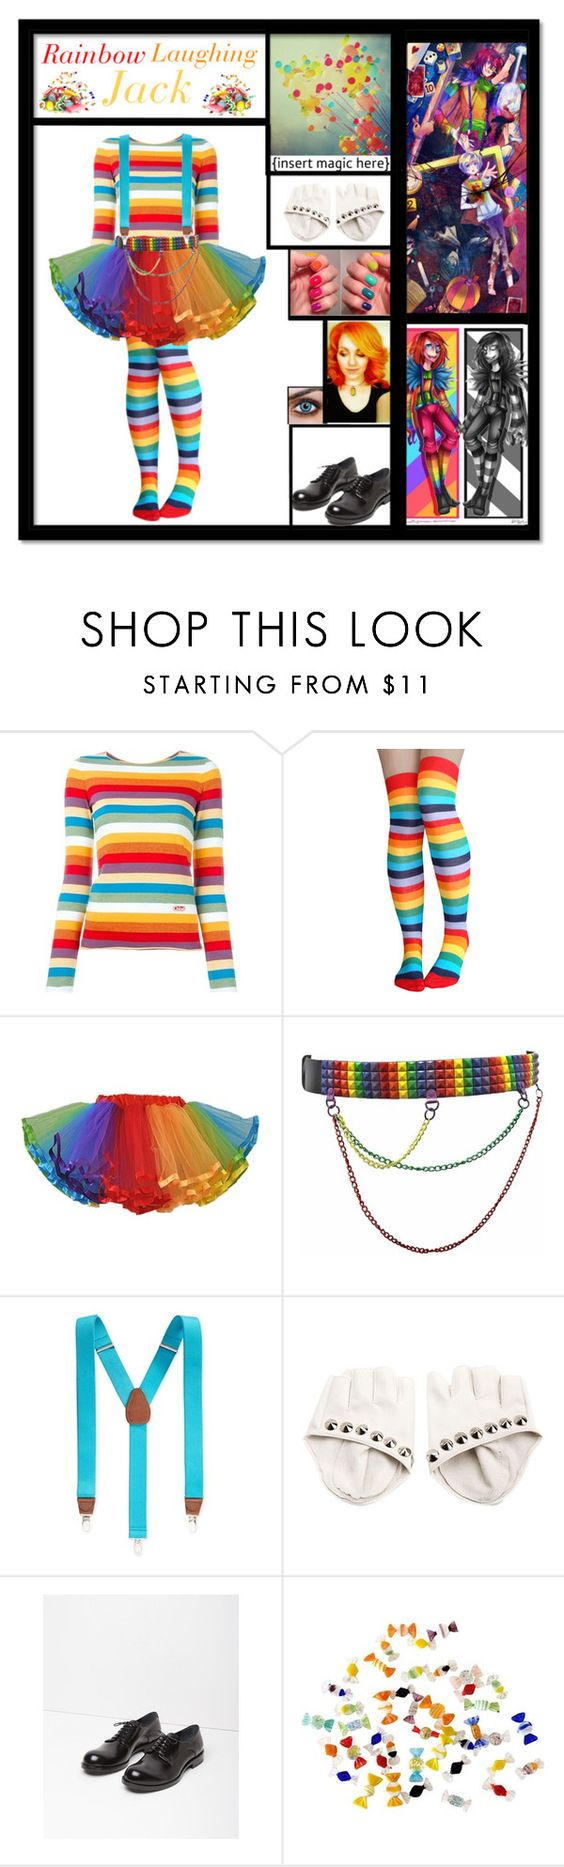 """""""Rainbow Laughing Jack Inspired"""" by dragonladydoctor ❤ liked on Polyvore featuring Chloé, Club Room, Jil Sander and Murano"""